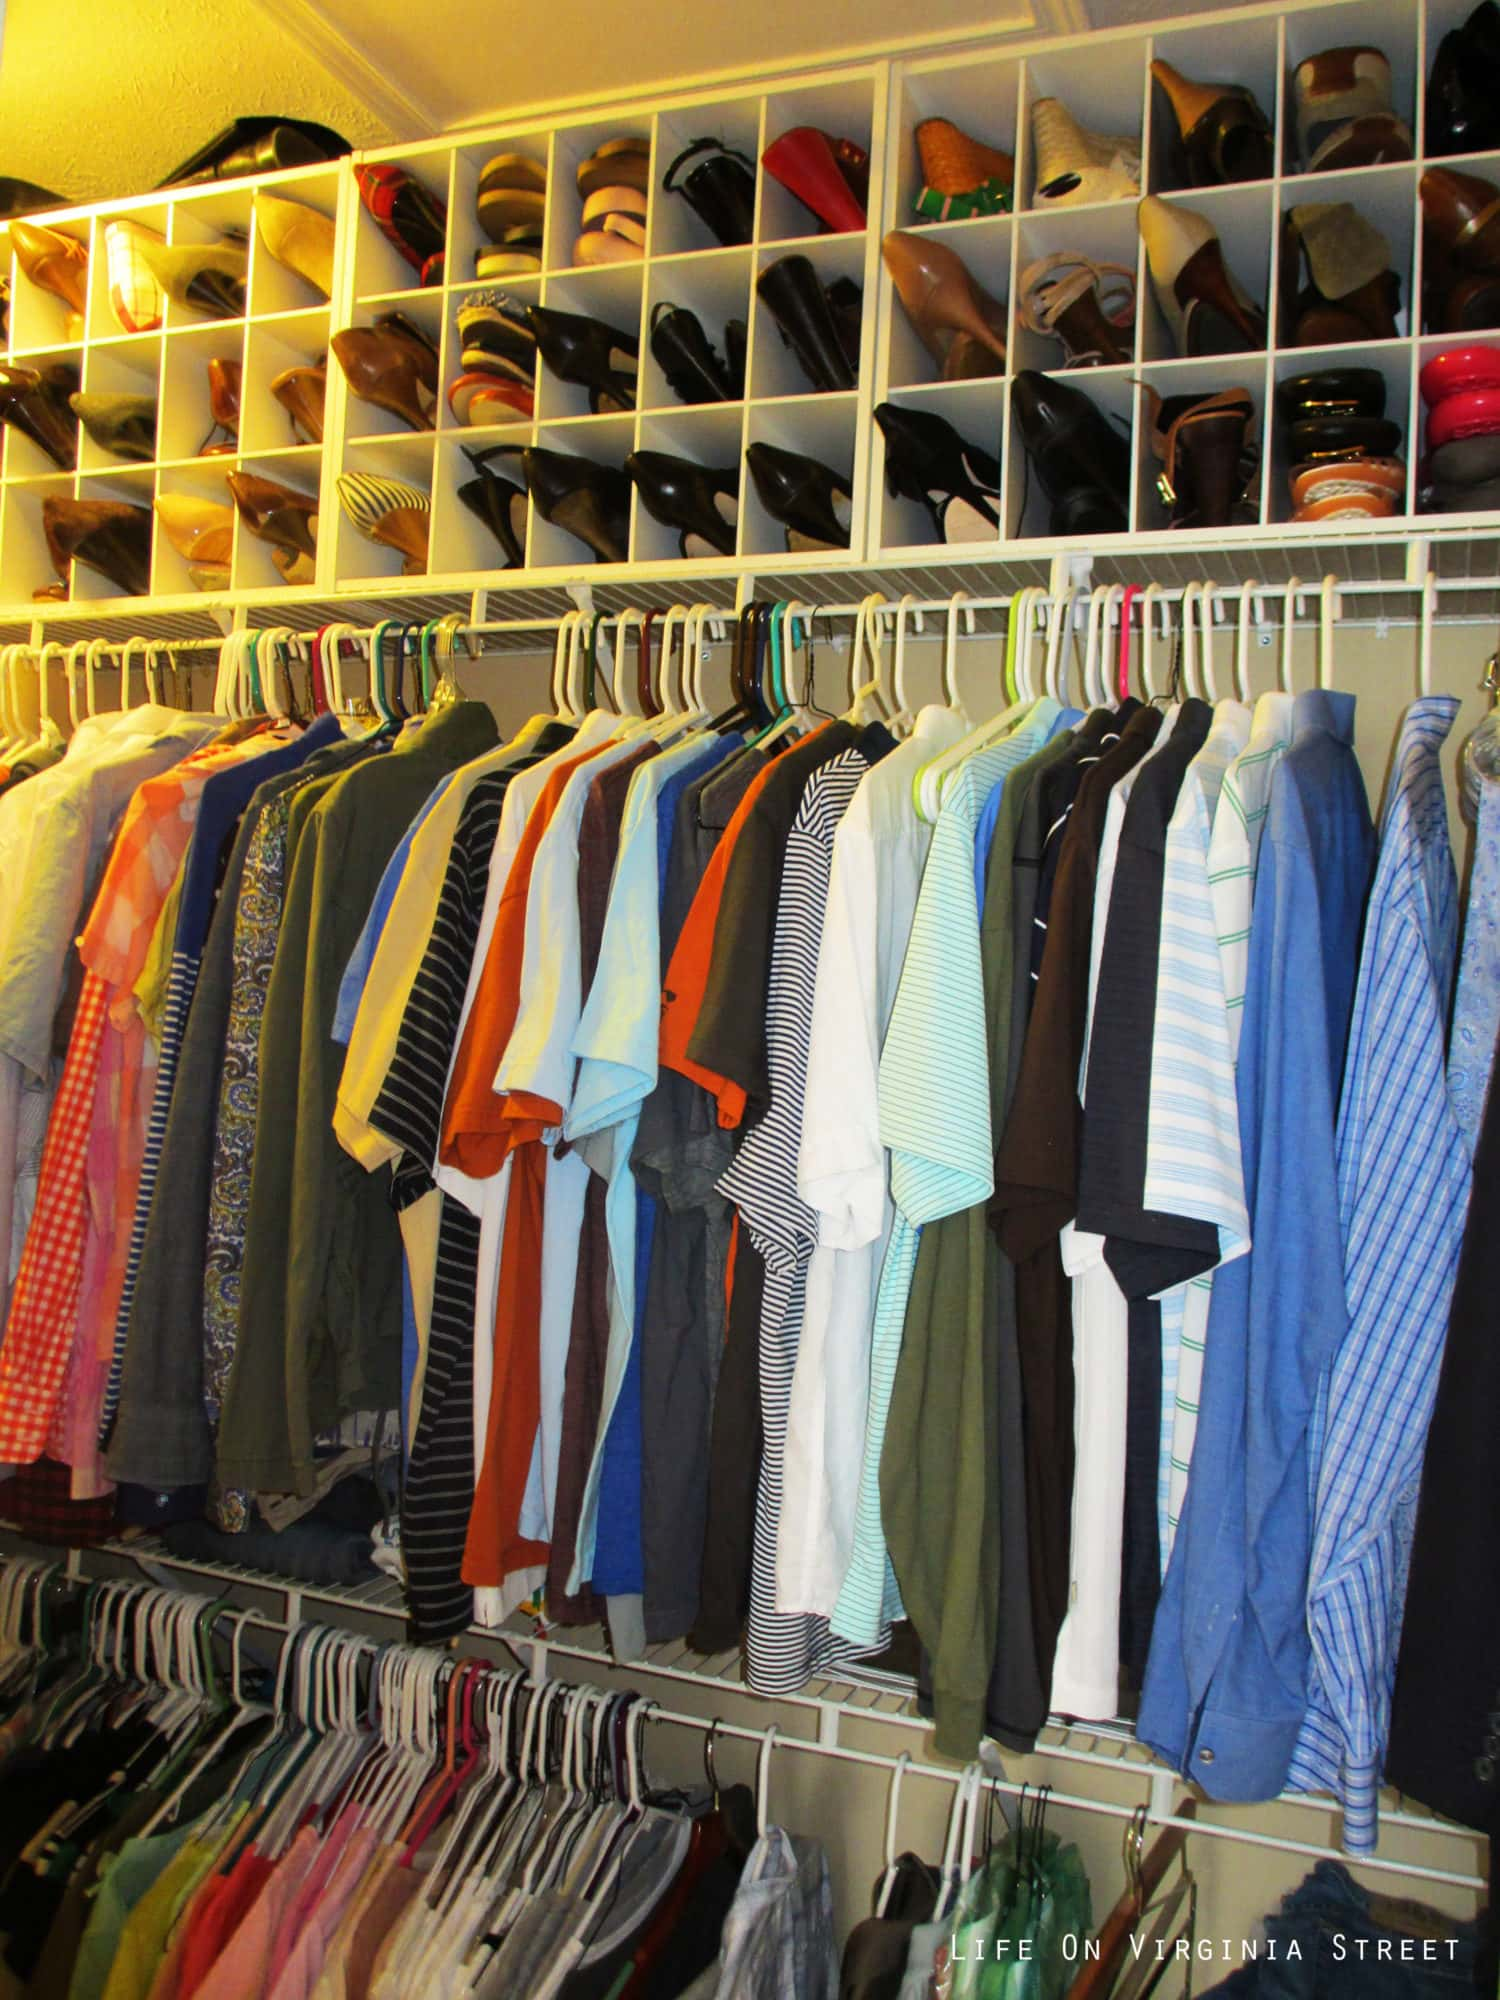 A close up picture of the shirts and shoes in the closet.